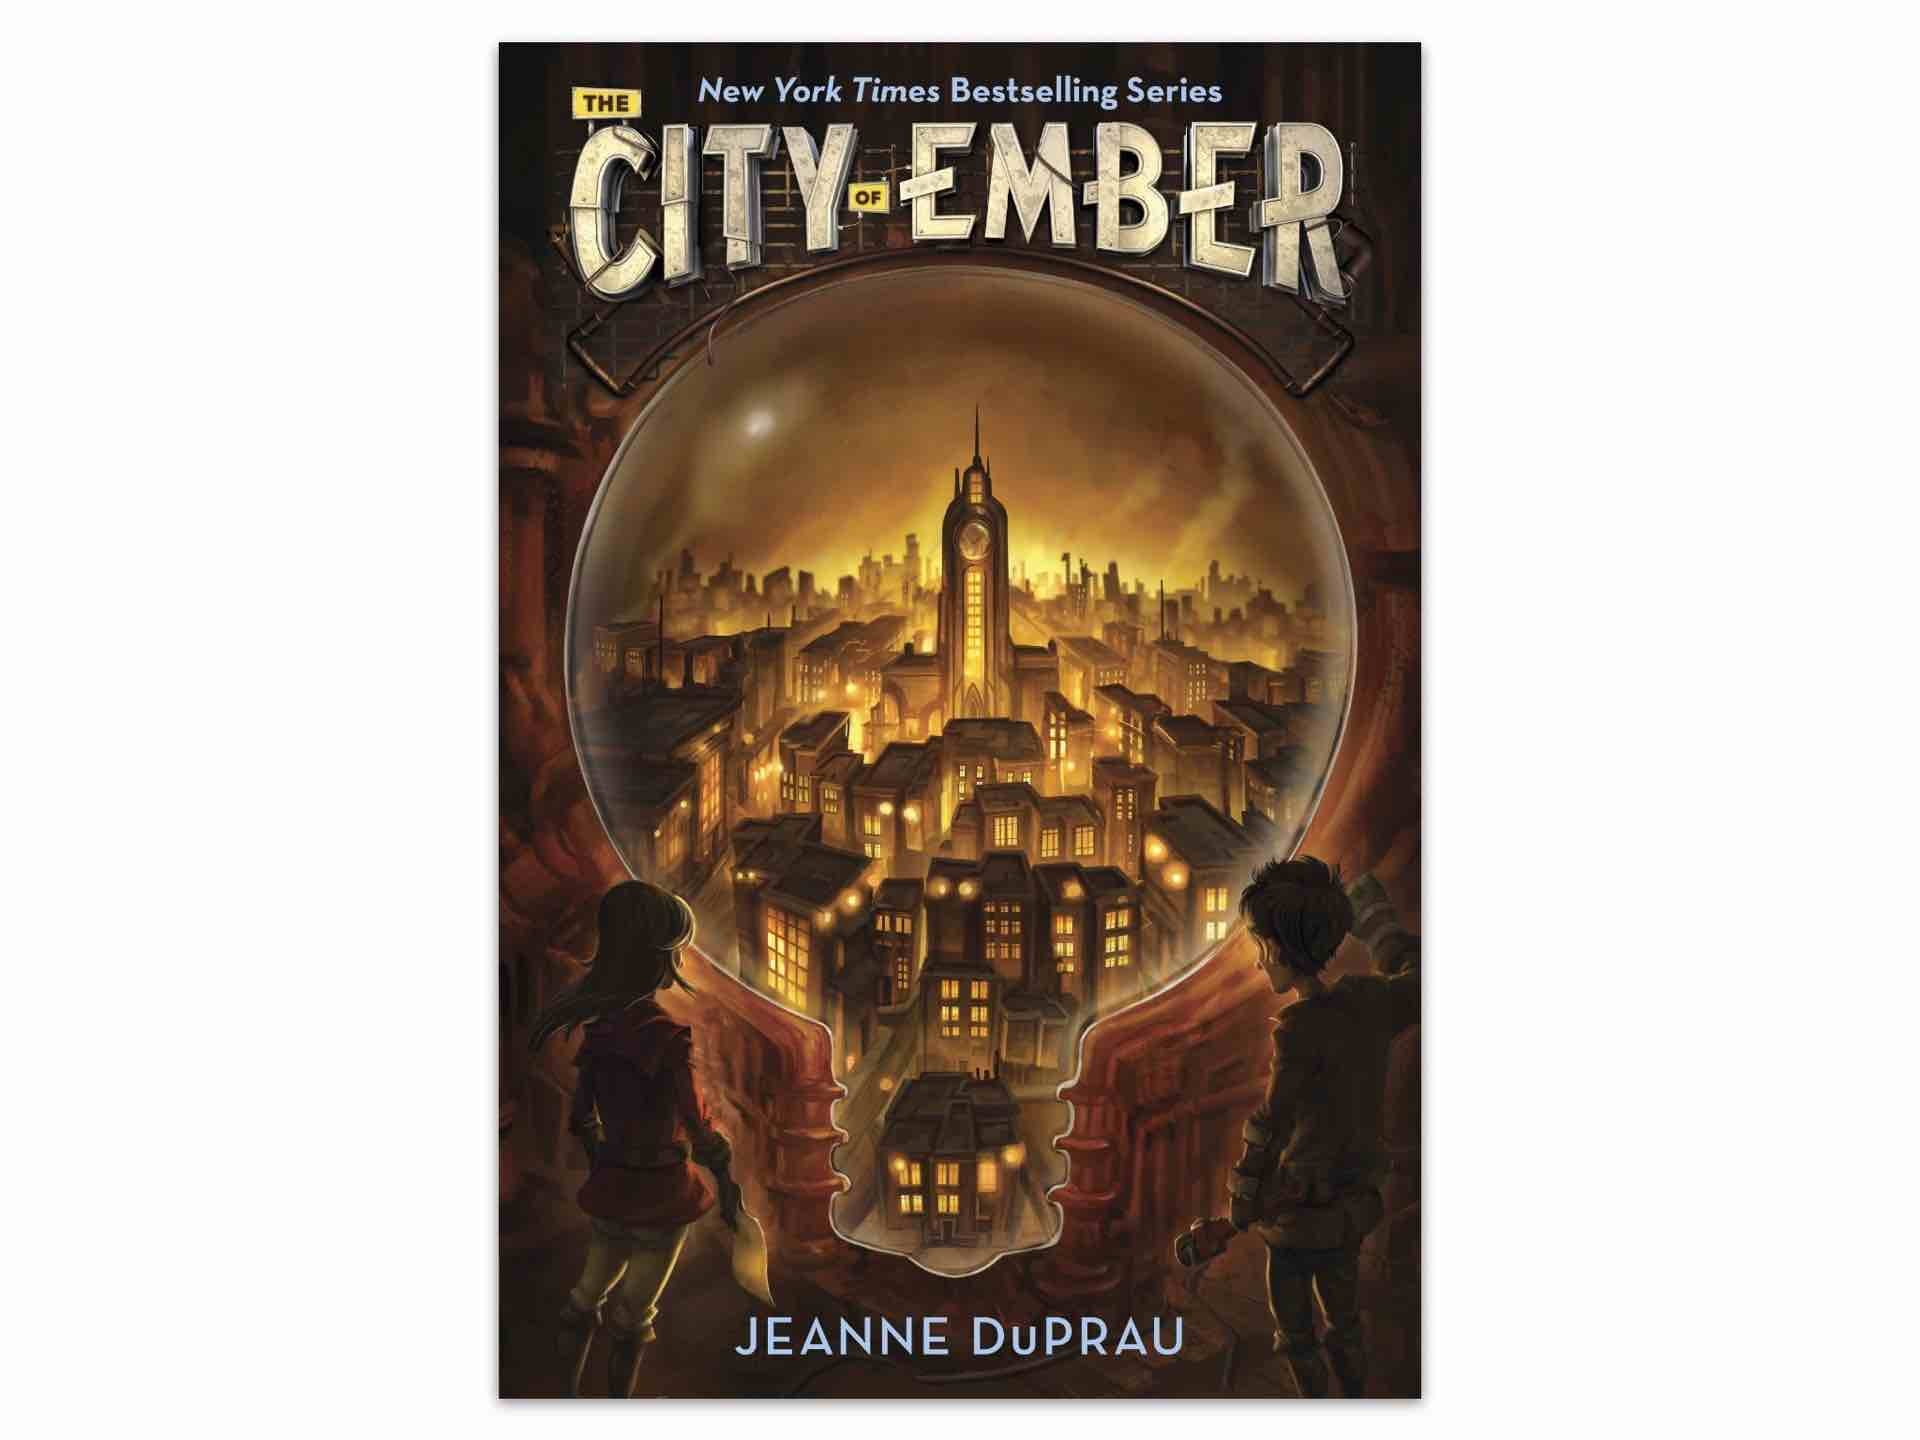 The City of Ember by Jeanne DuPrau.